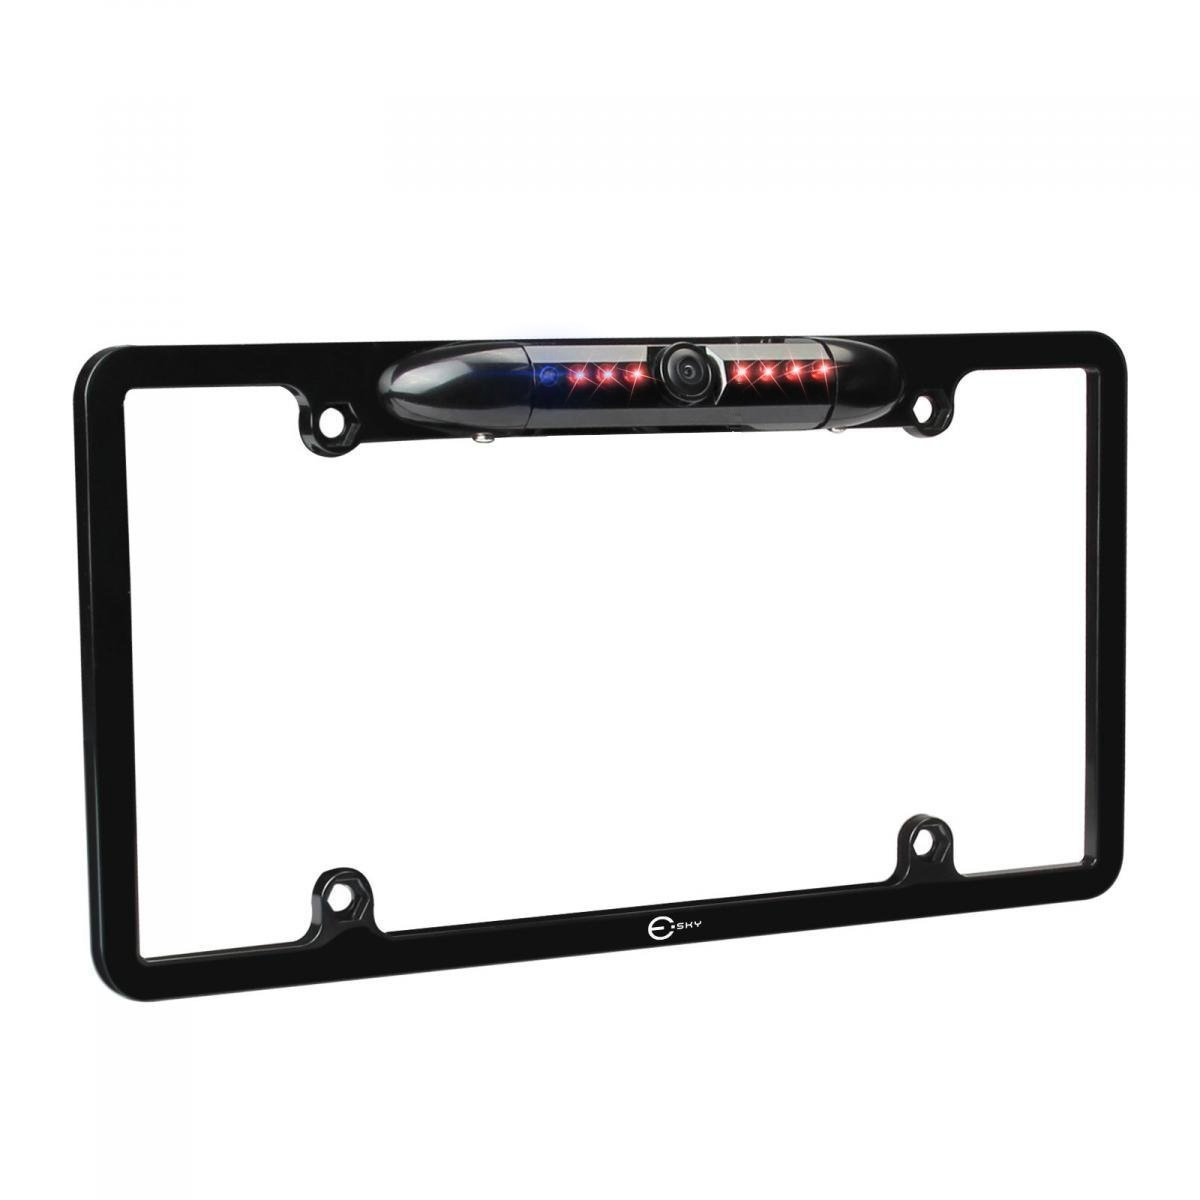 License Plate Backup Camera, Esky Rear View Camera 170° Viewing Angle Universal Car License Plate Frame Mount Waterproof High Sensitive 8 IR LED [The Wirecutter's Pick]